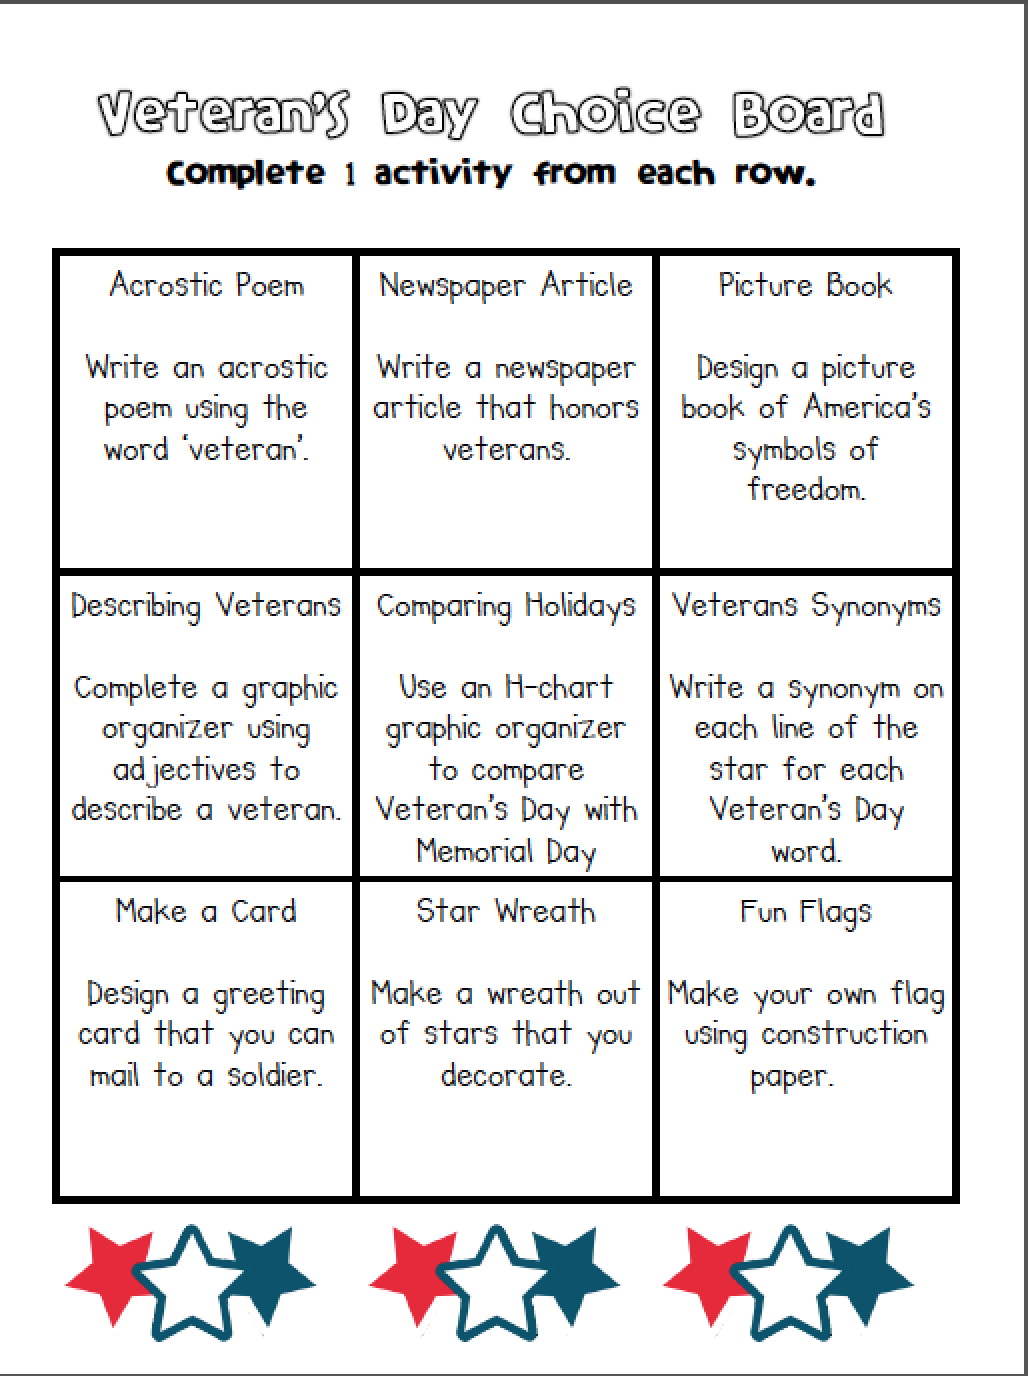 small resolution of educationjourney: Veteran's Day Choice Board   Veterans day